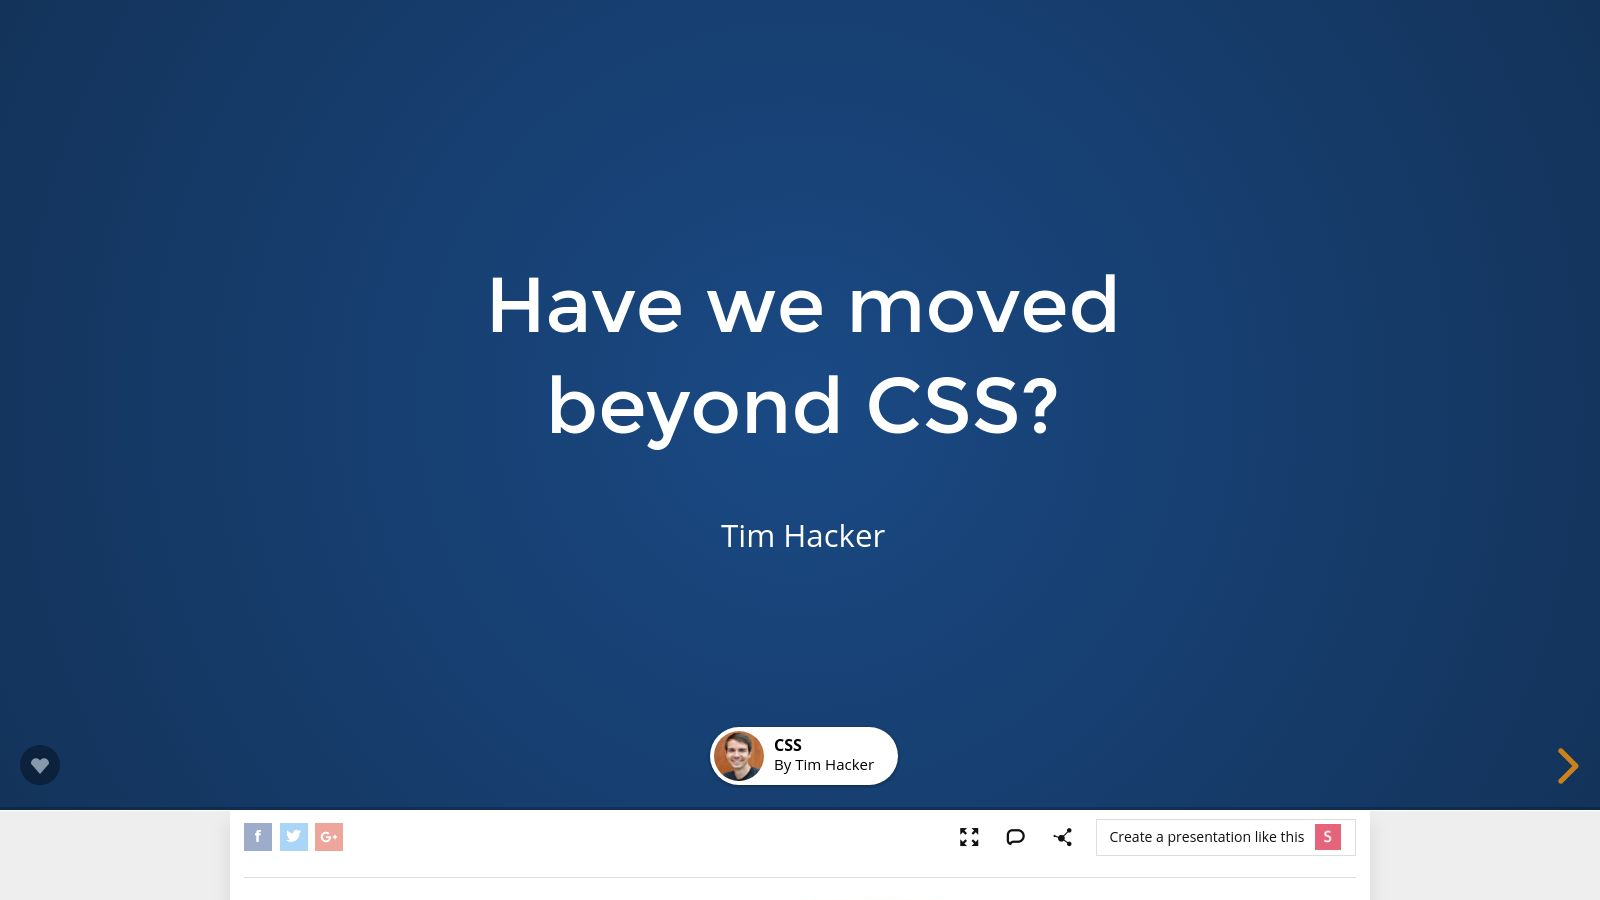 Have we moved beyond CSS?